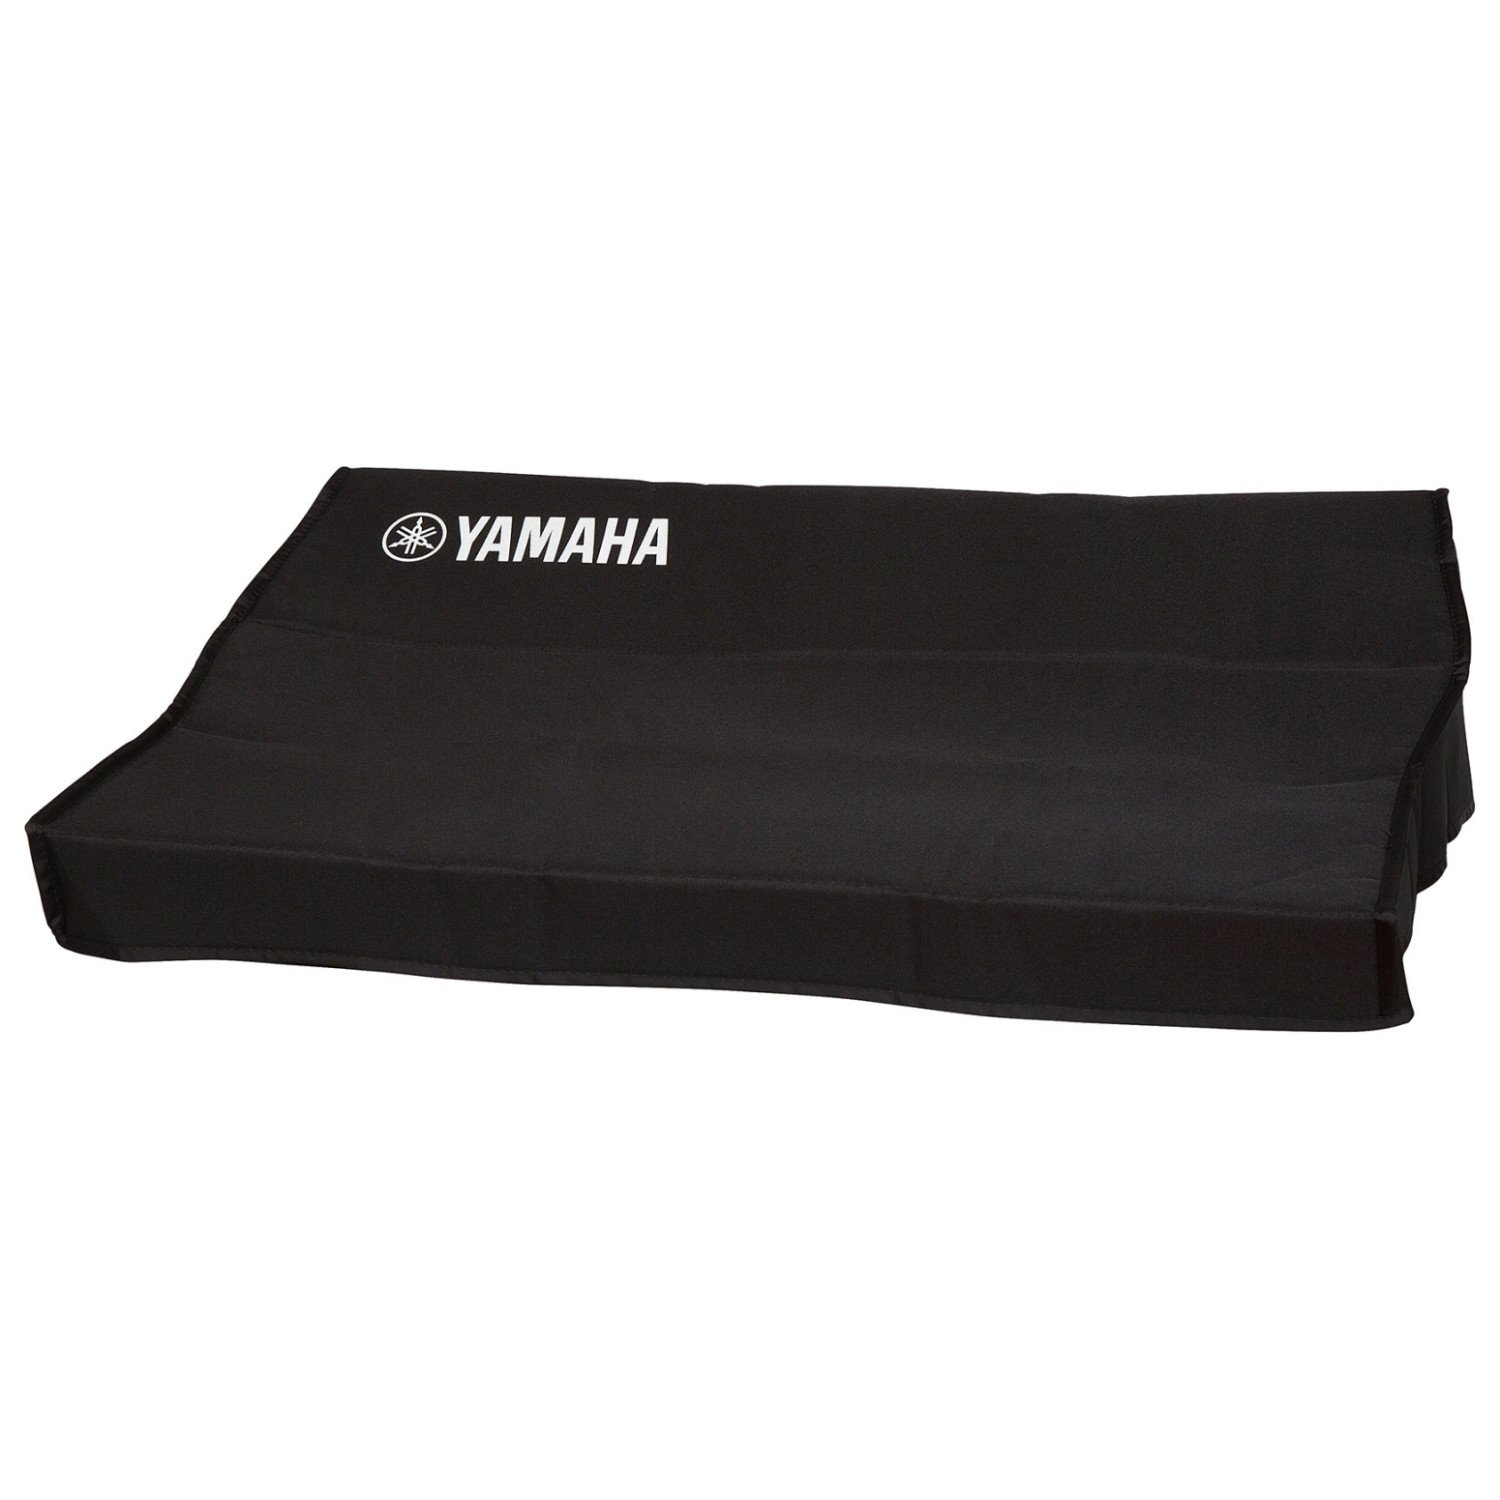 Yamaha TF5-COVER TF5 MIXING CONSOLE COVER